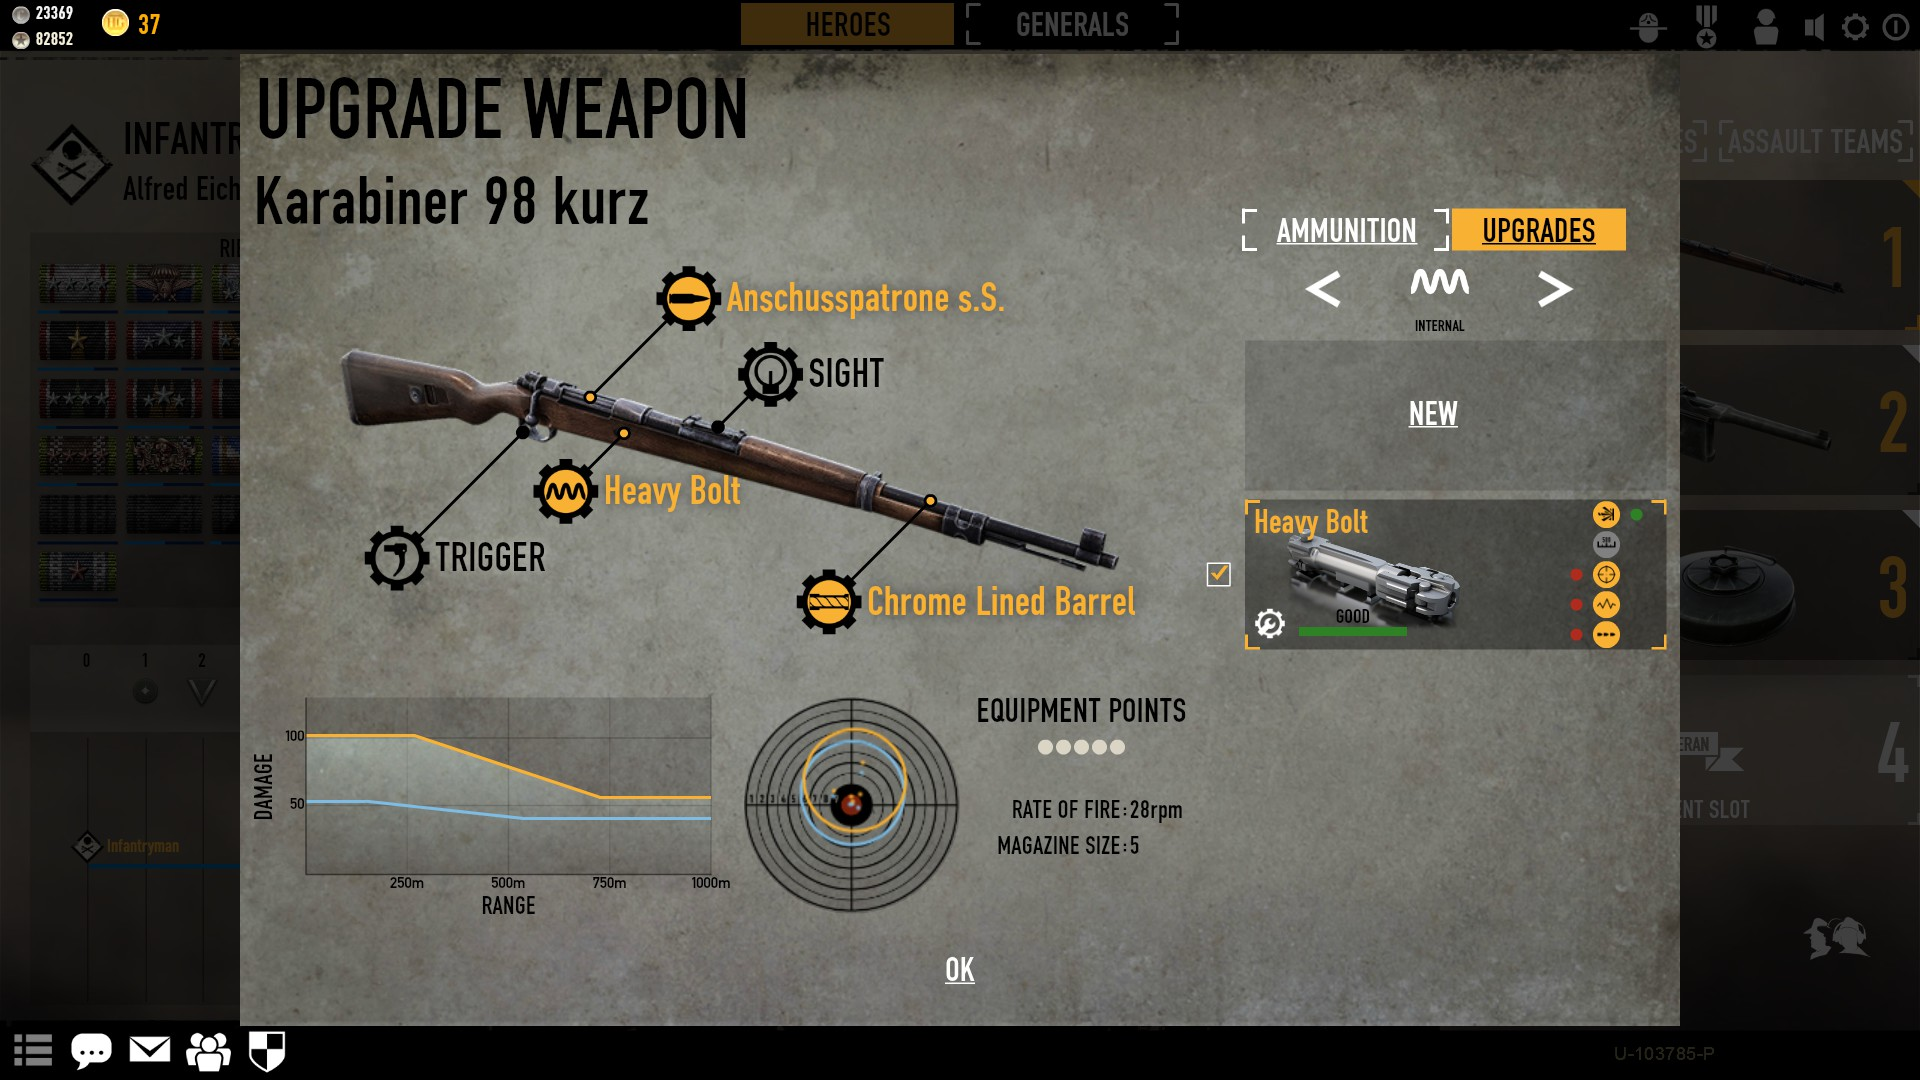 how to win heroes and generals as a rifle